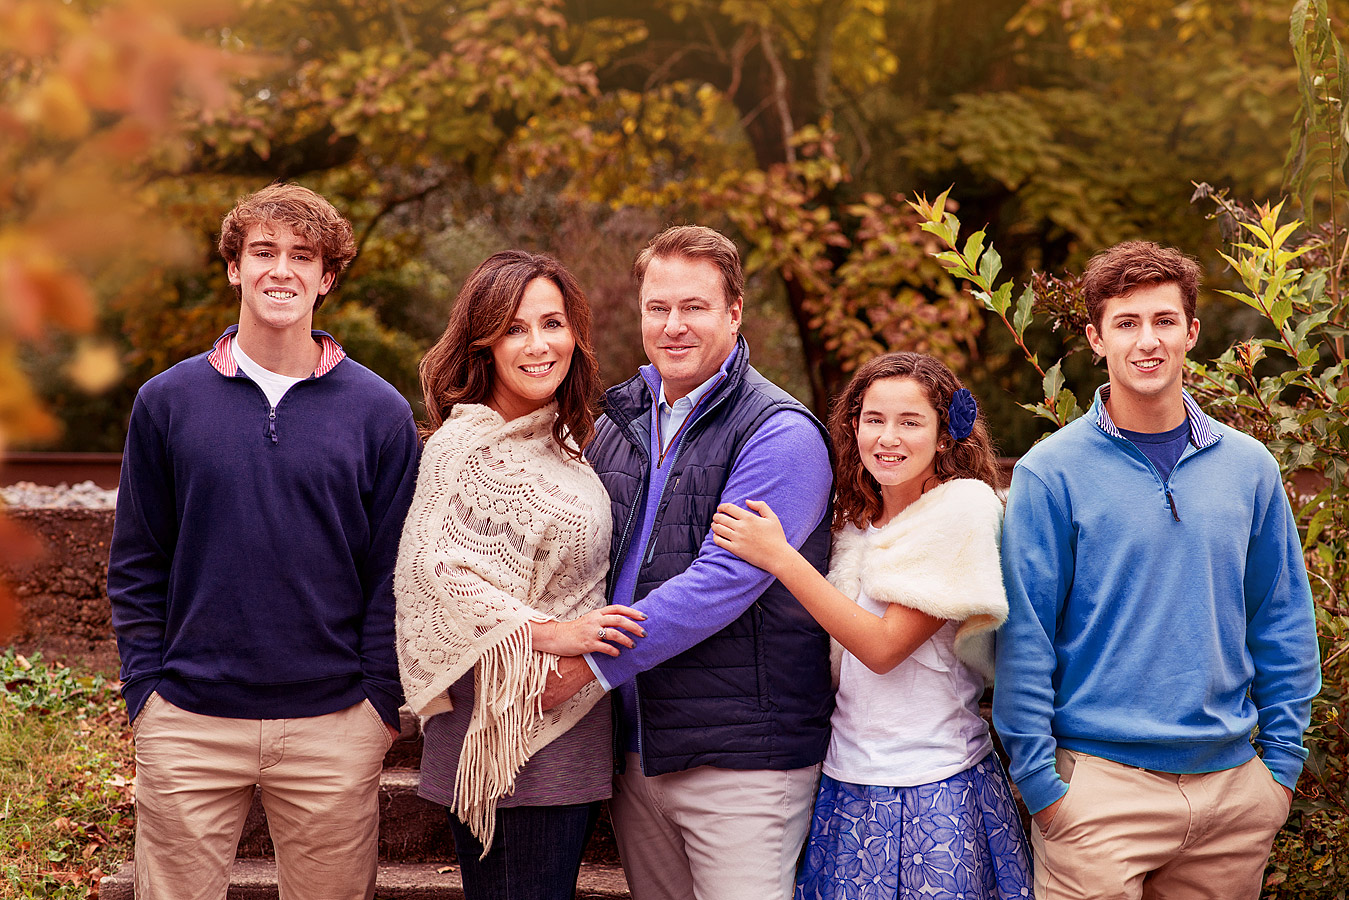 Fall Family Portraits of Mature Family in Blue Outfits by Lousville Family Photographer